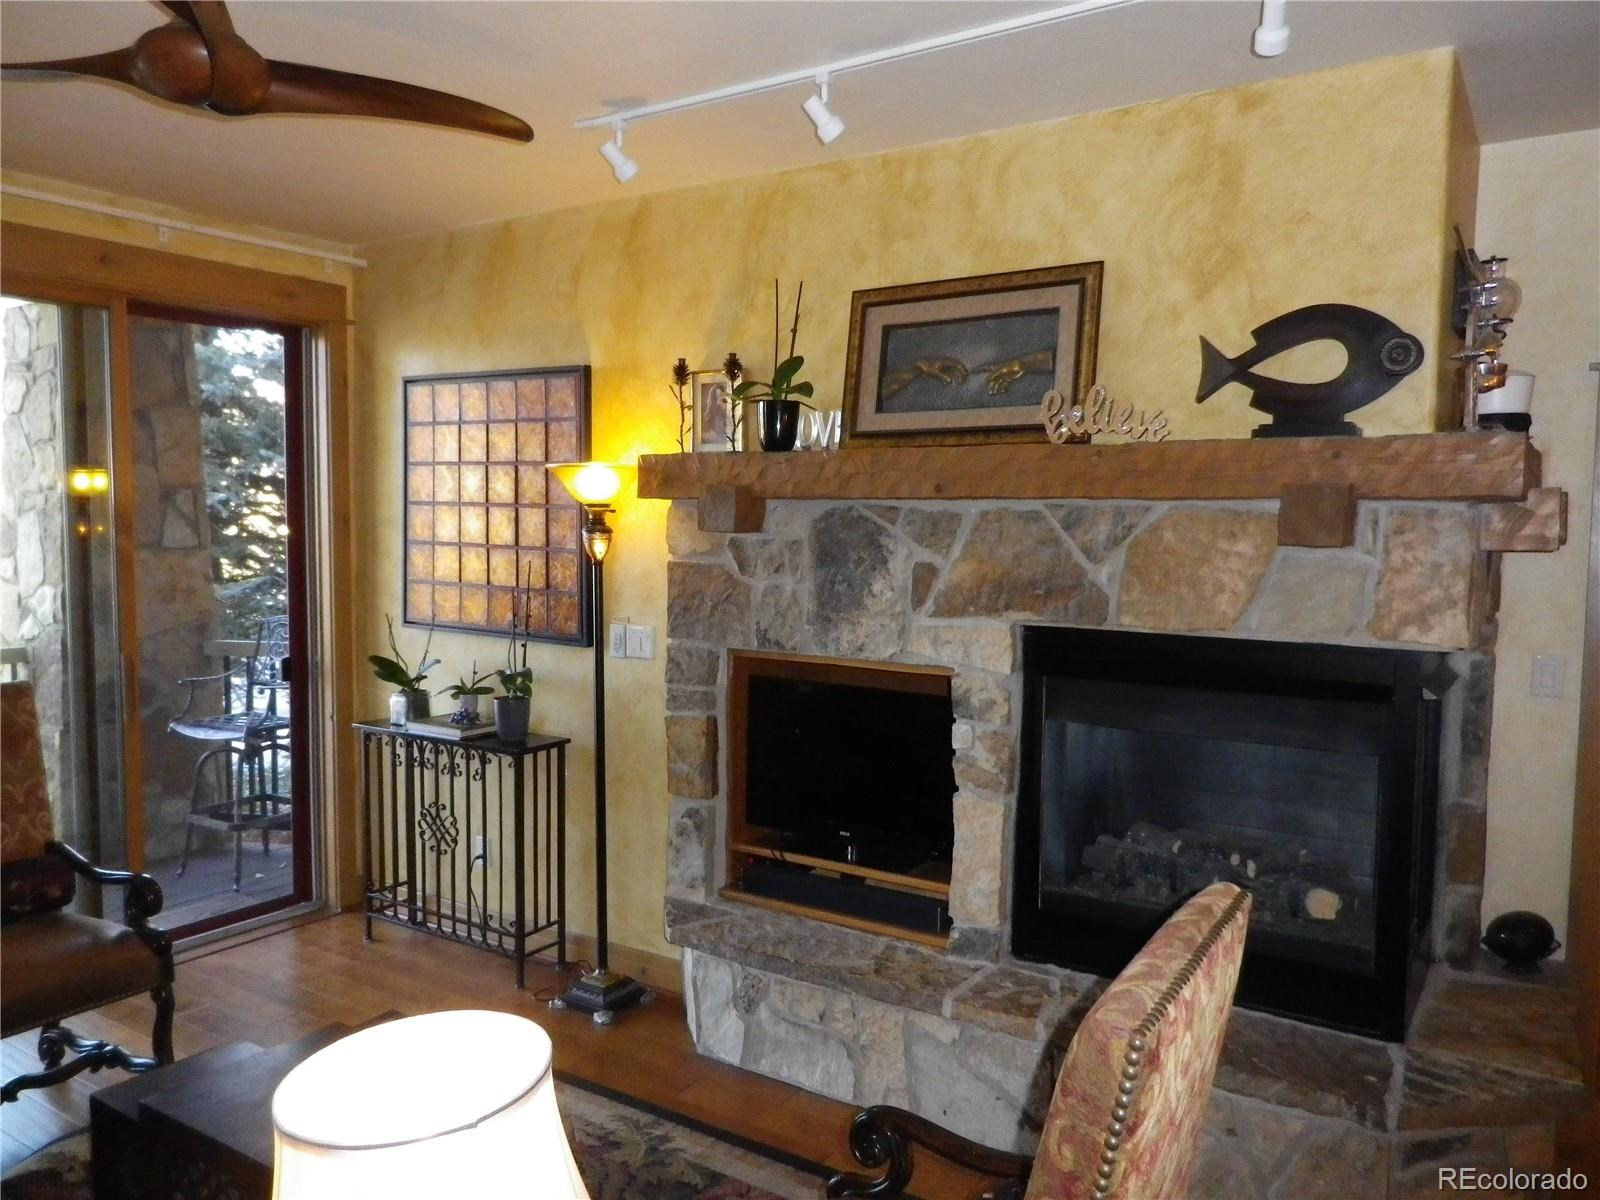 MLS# 4824102 - 7 - 1463 Flattop Circle #201, Steamboat Springs, CO 80487